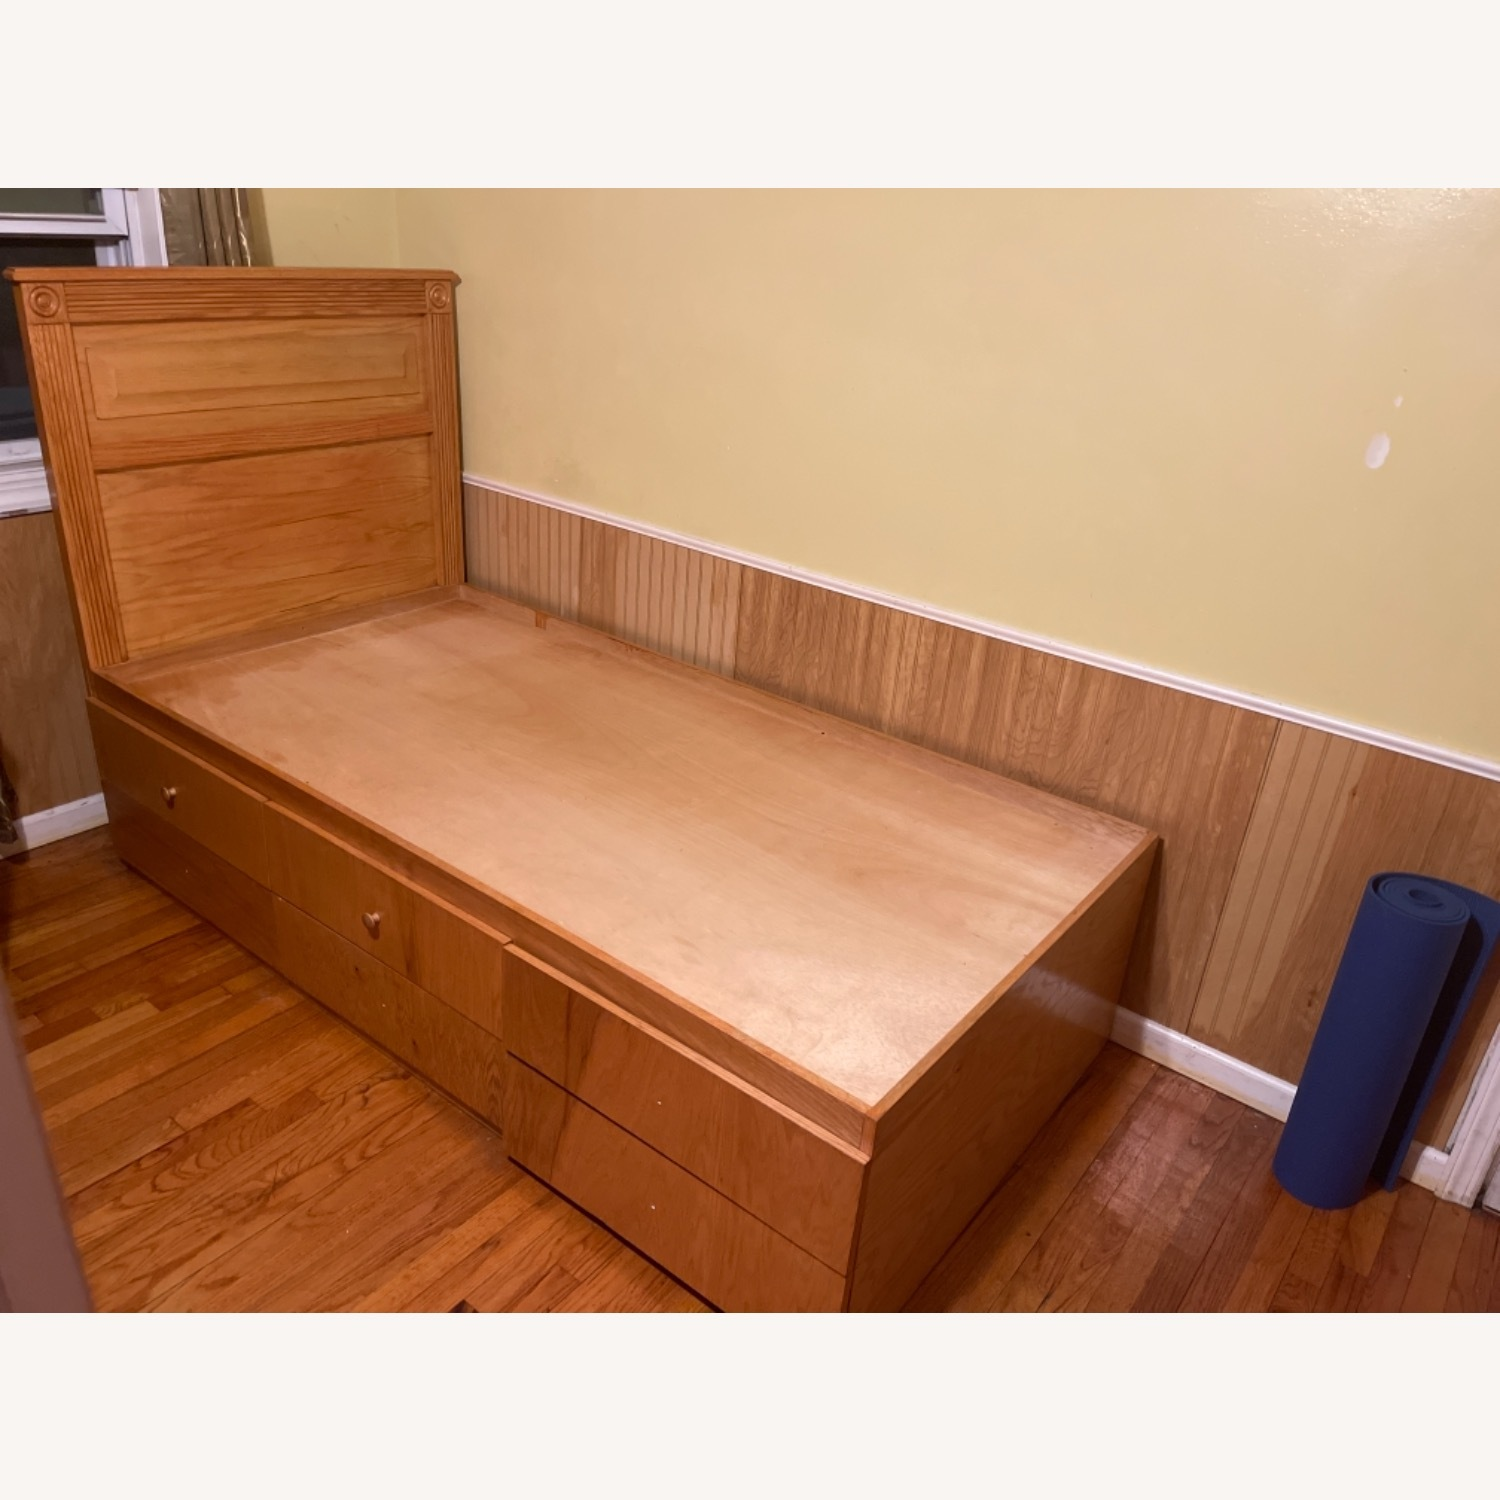 Natural Wood Colour Twin Bed Built-In Storage - image-1